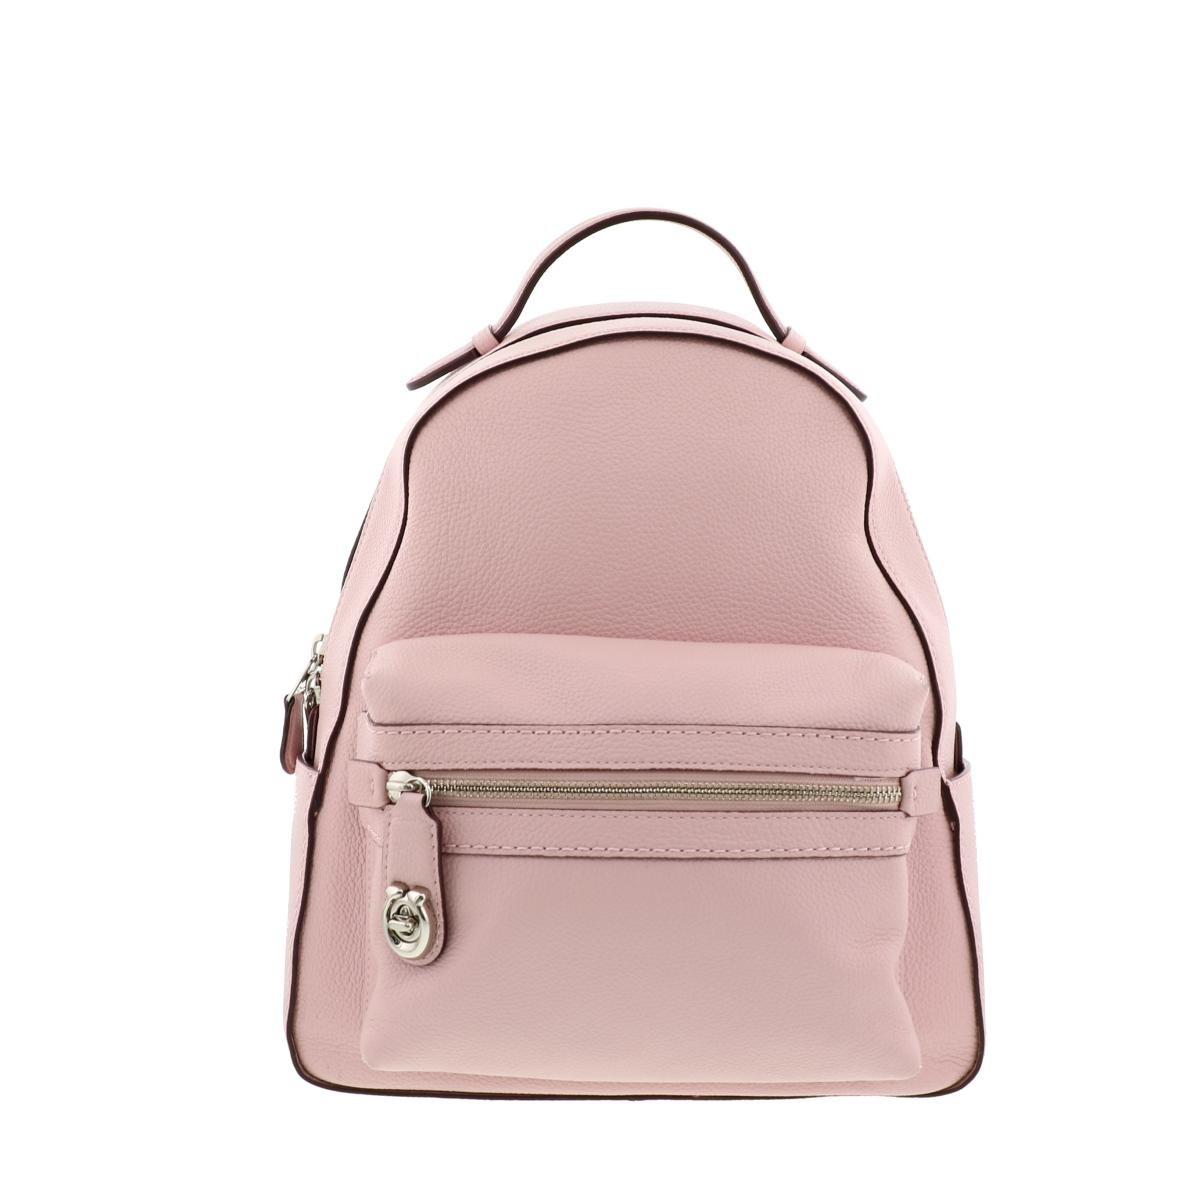 【SALE】【中古】 COACH コーチ バックパック バッグ リュックサック/デイパック  Pink/ピンク 35608 used:A